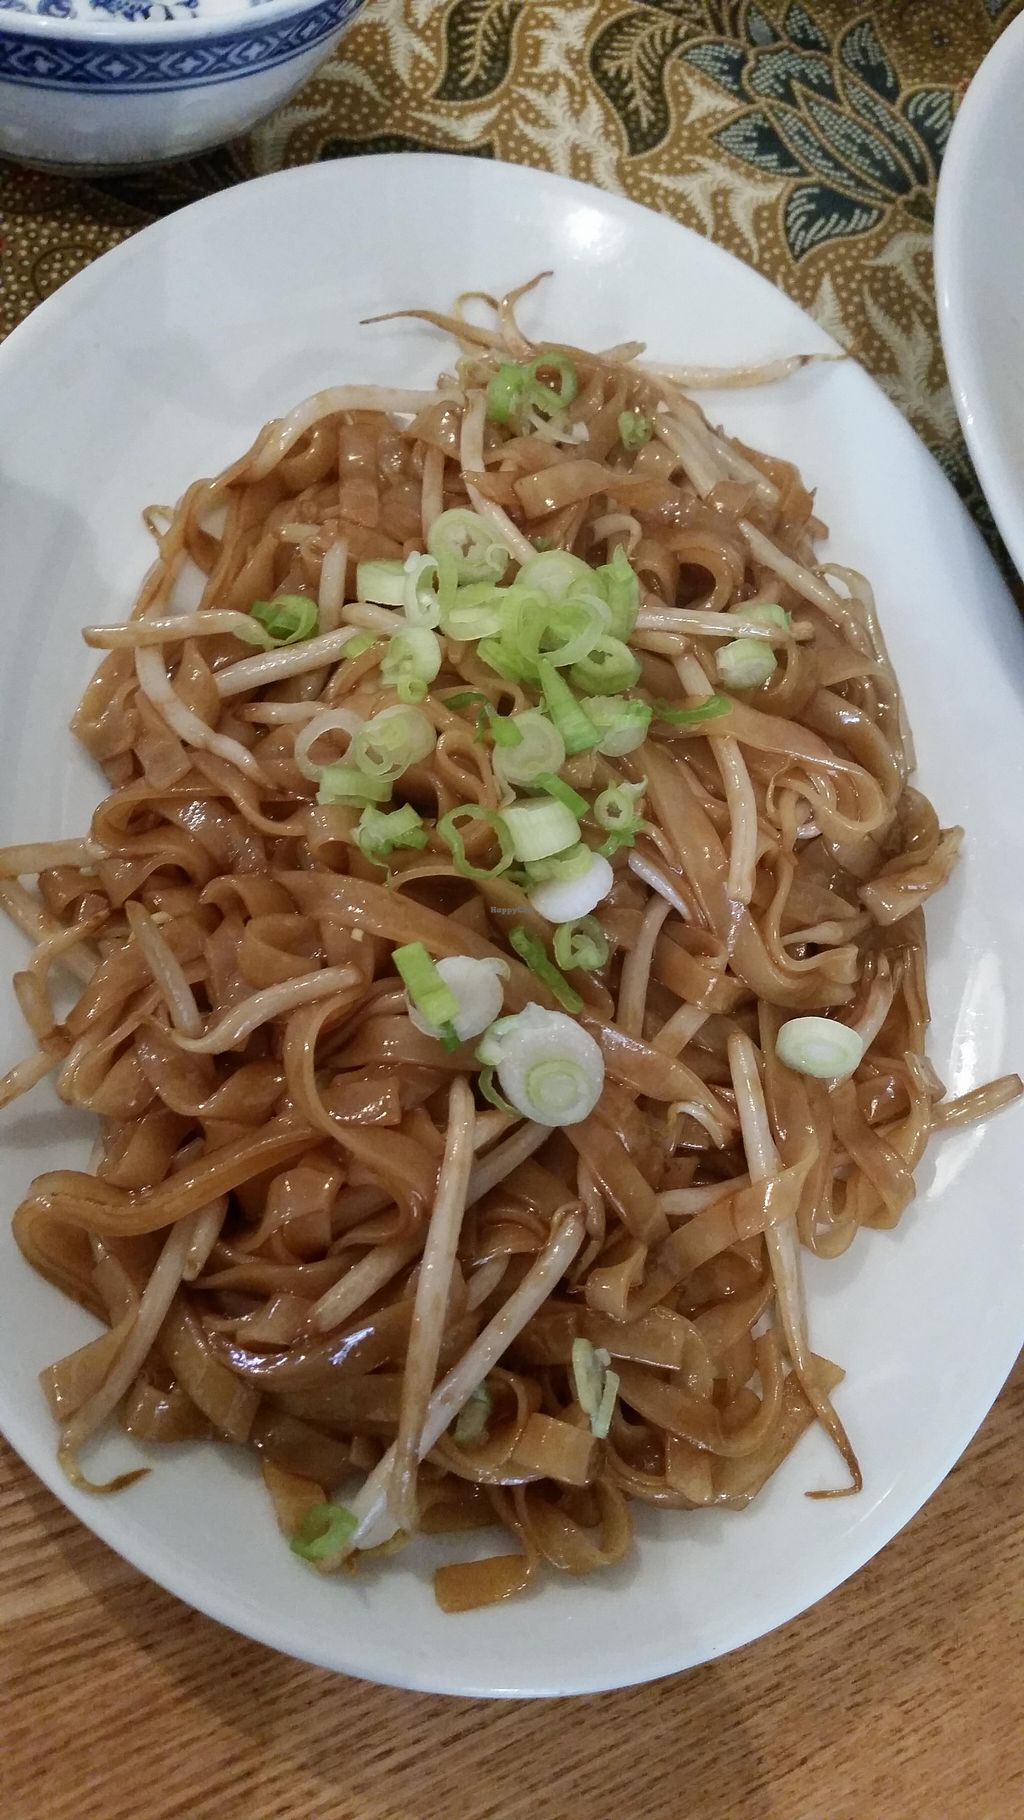 """Photo of CLOSED: Blue Ginger  by <a href=""""/members/profile/konlish"""">konlish</a> <br/>Stir fry noodles with bean sprouts <br/> August 10, 2015  - <a href='/contact/abuse/image/47306/113050'>Report</a>"""